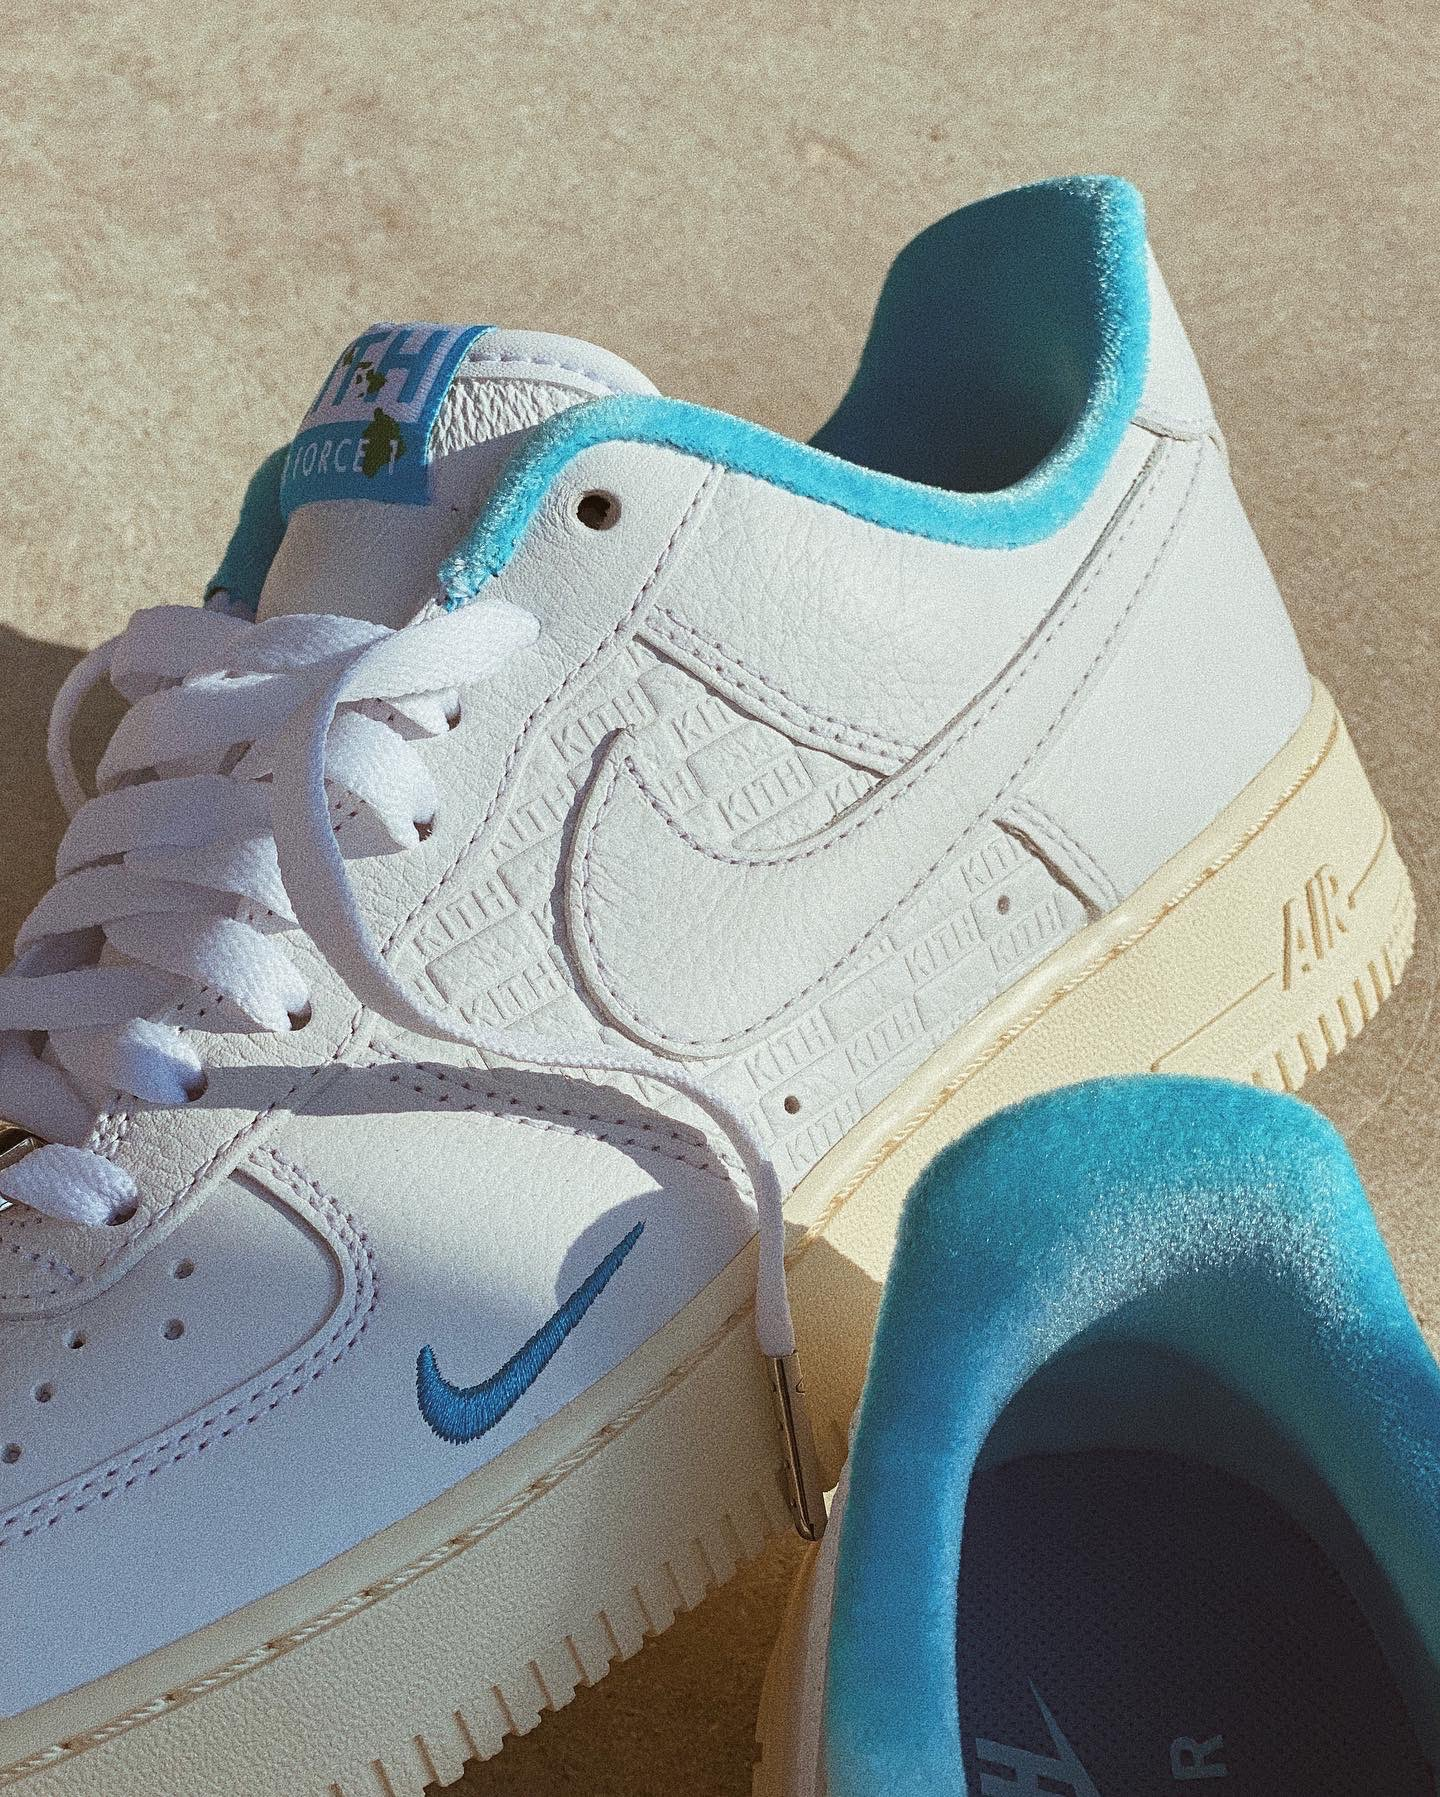 kith-nike-air-force-1-low-hawaii-blue-lagoon-dc9555-100-release-202108